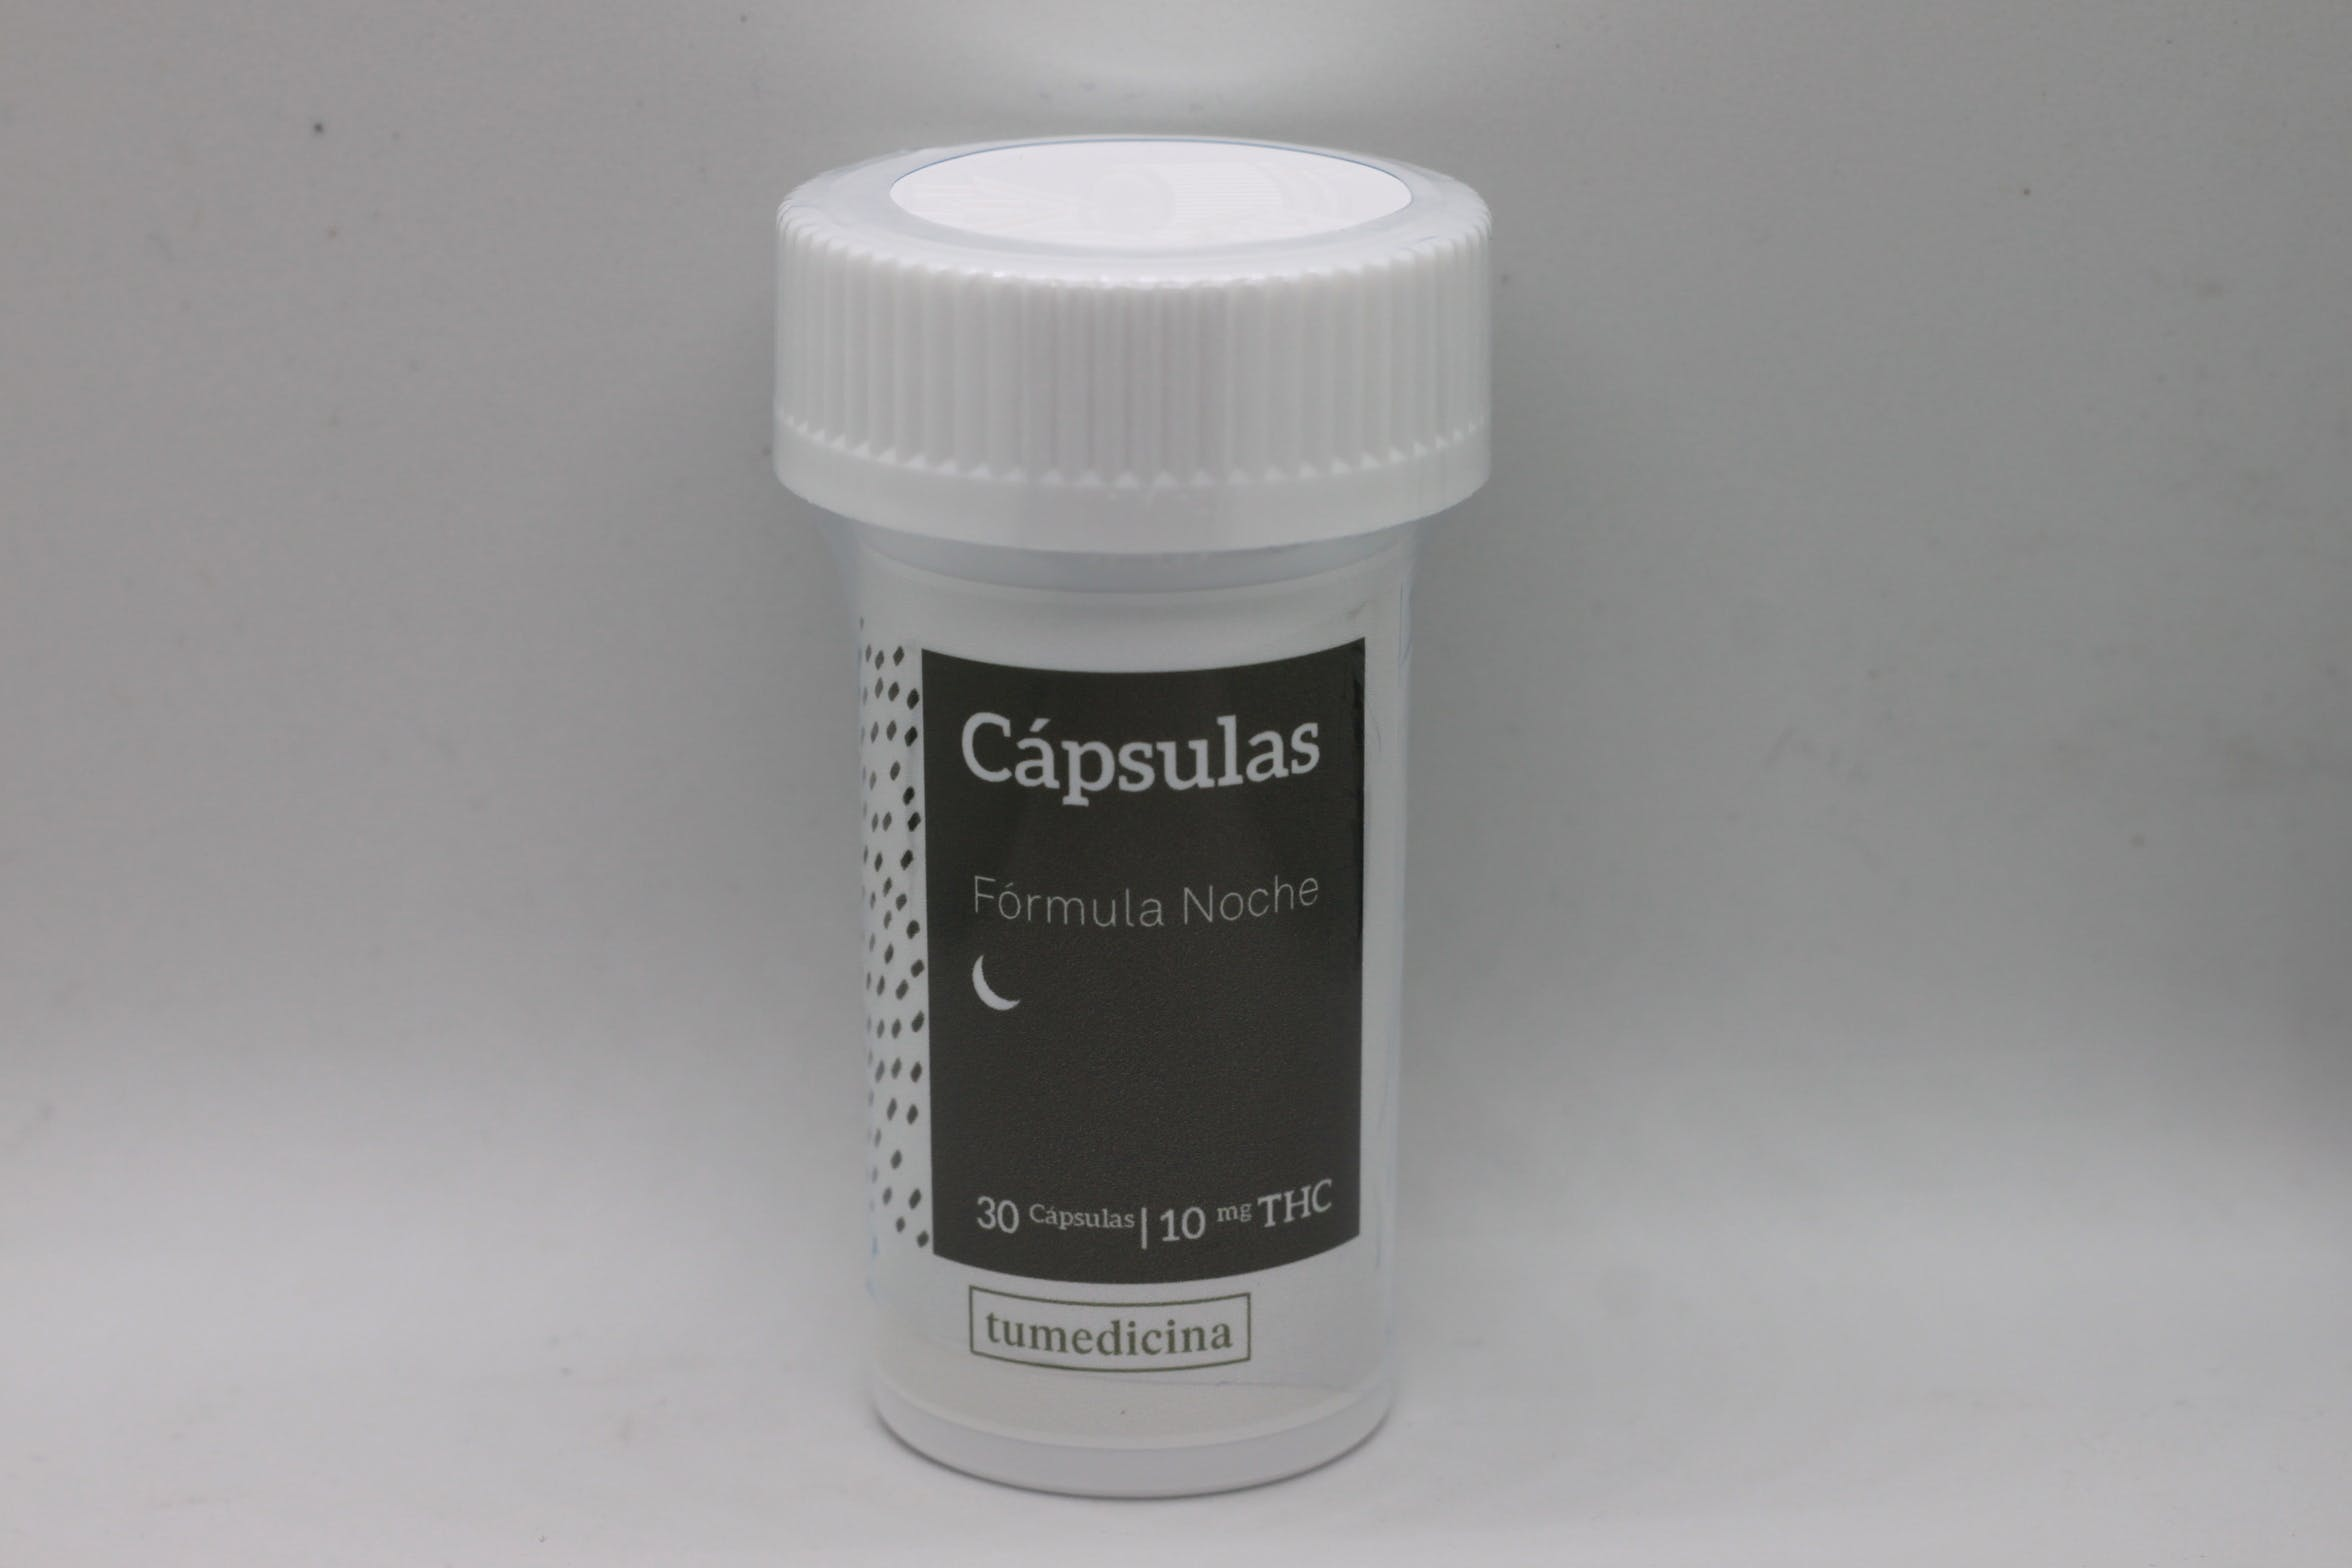 edible-cima-capsulas-night-10mg30-capsulas